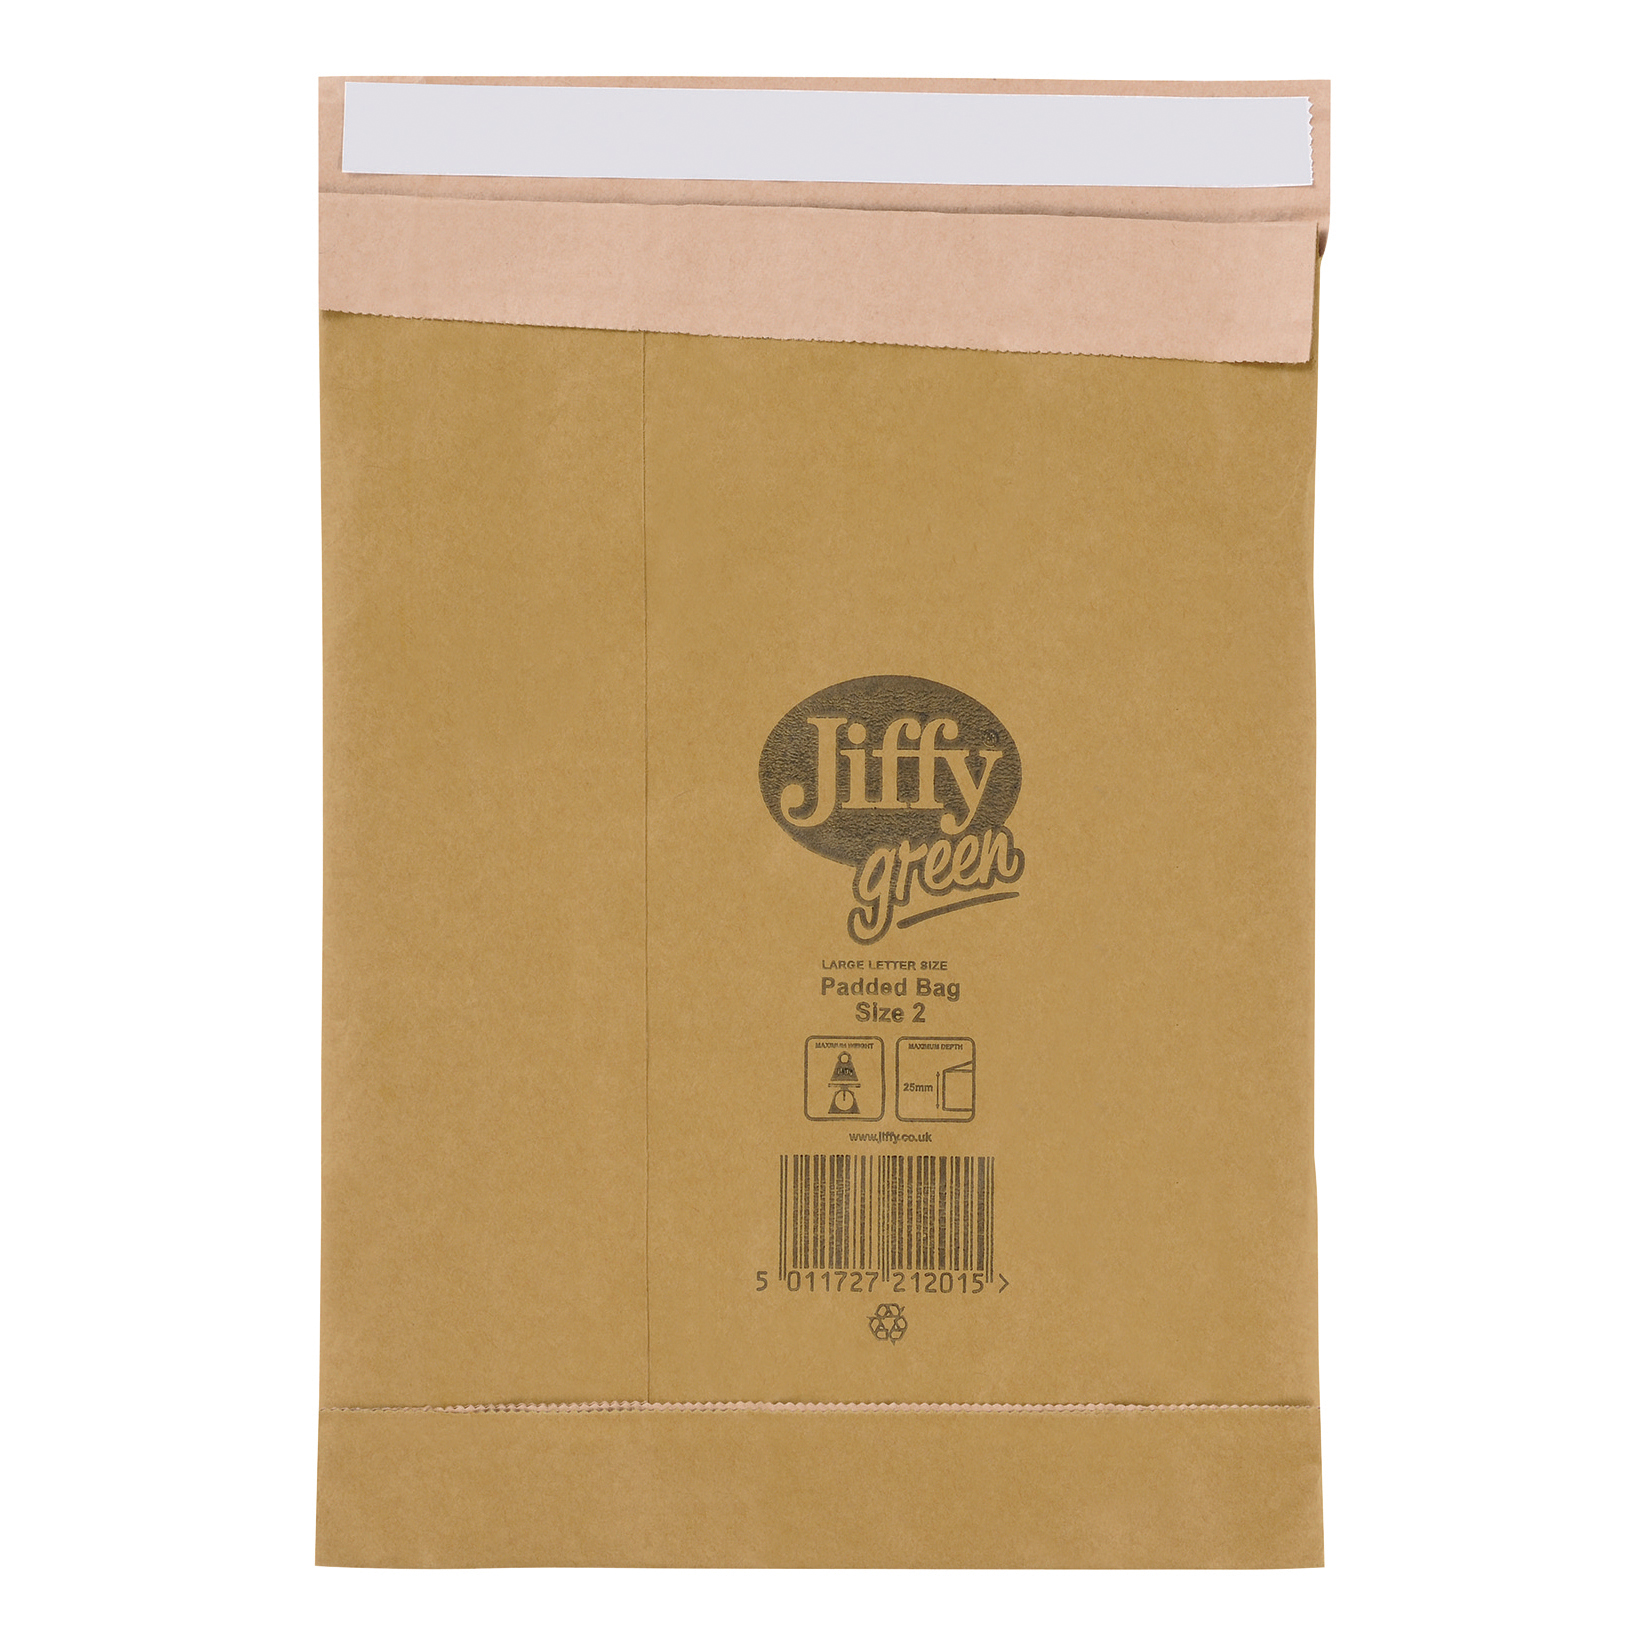 Jiffy Green Padded Bags Kraft and Recycled Paper Cushioning Size 8 442x661mm Ref 01903 Pack 25